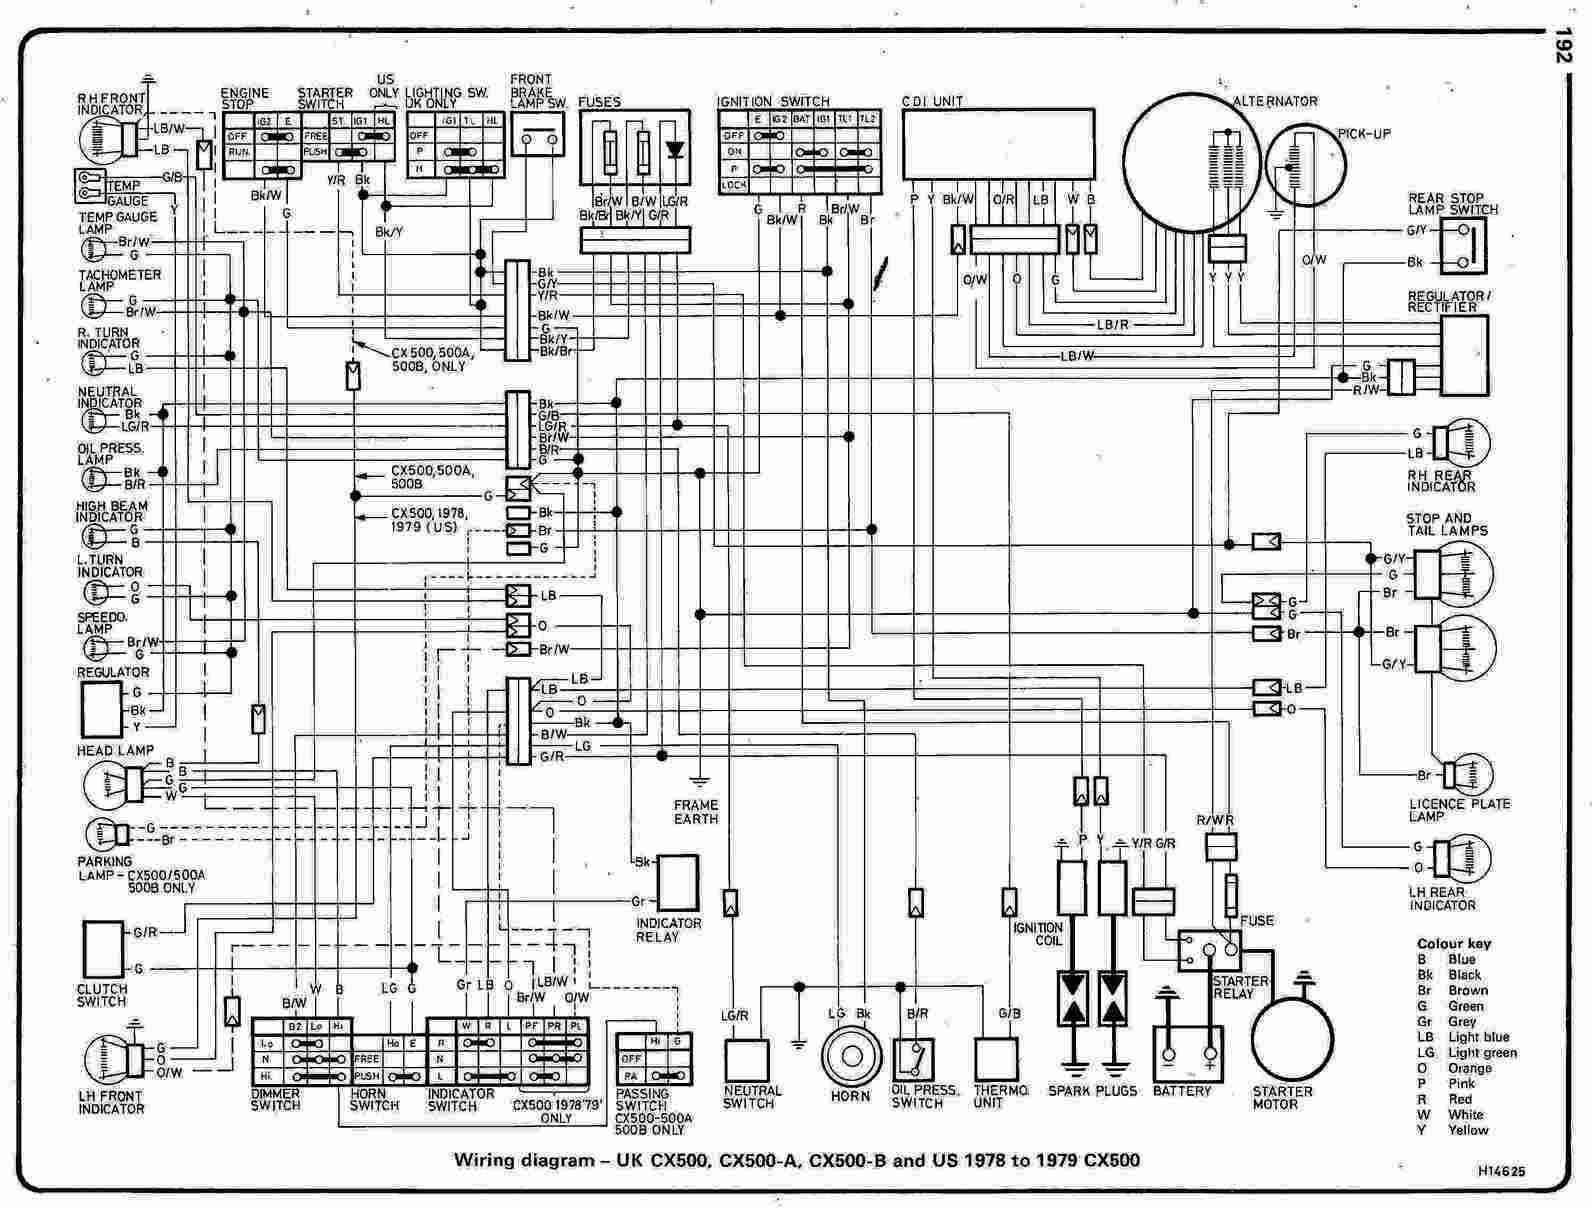 Honda CX500 Motorcycle 19781979 Complete Wiring Diagram